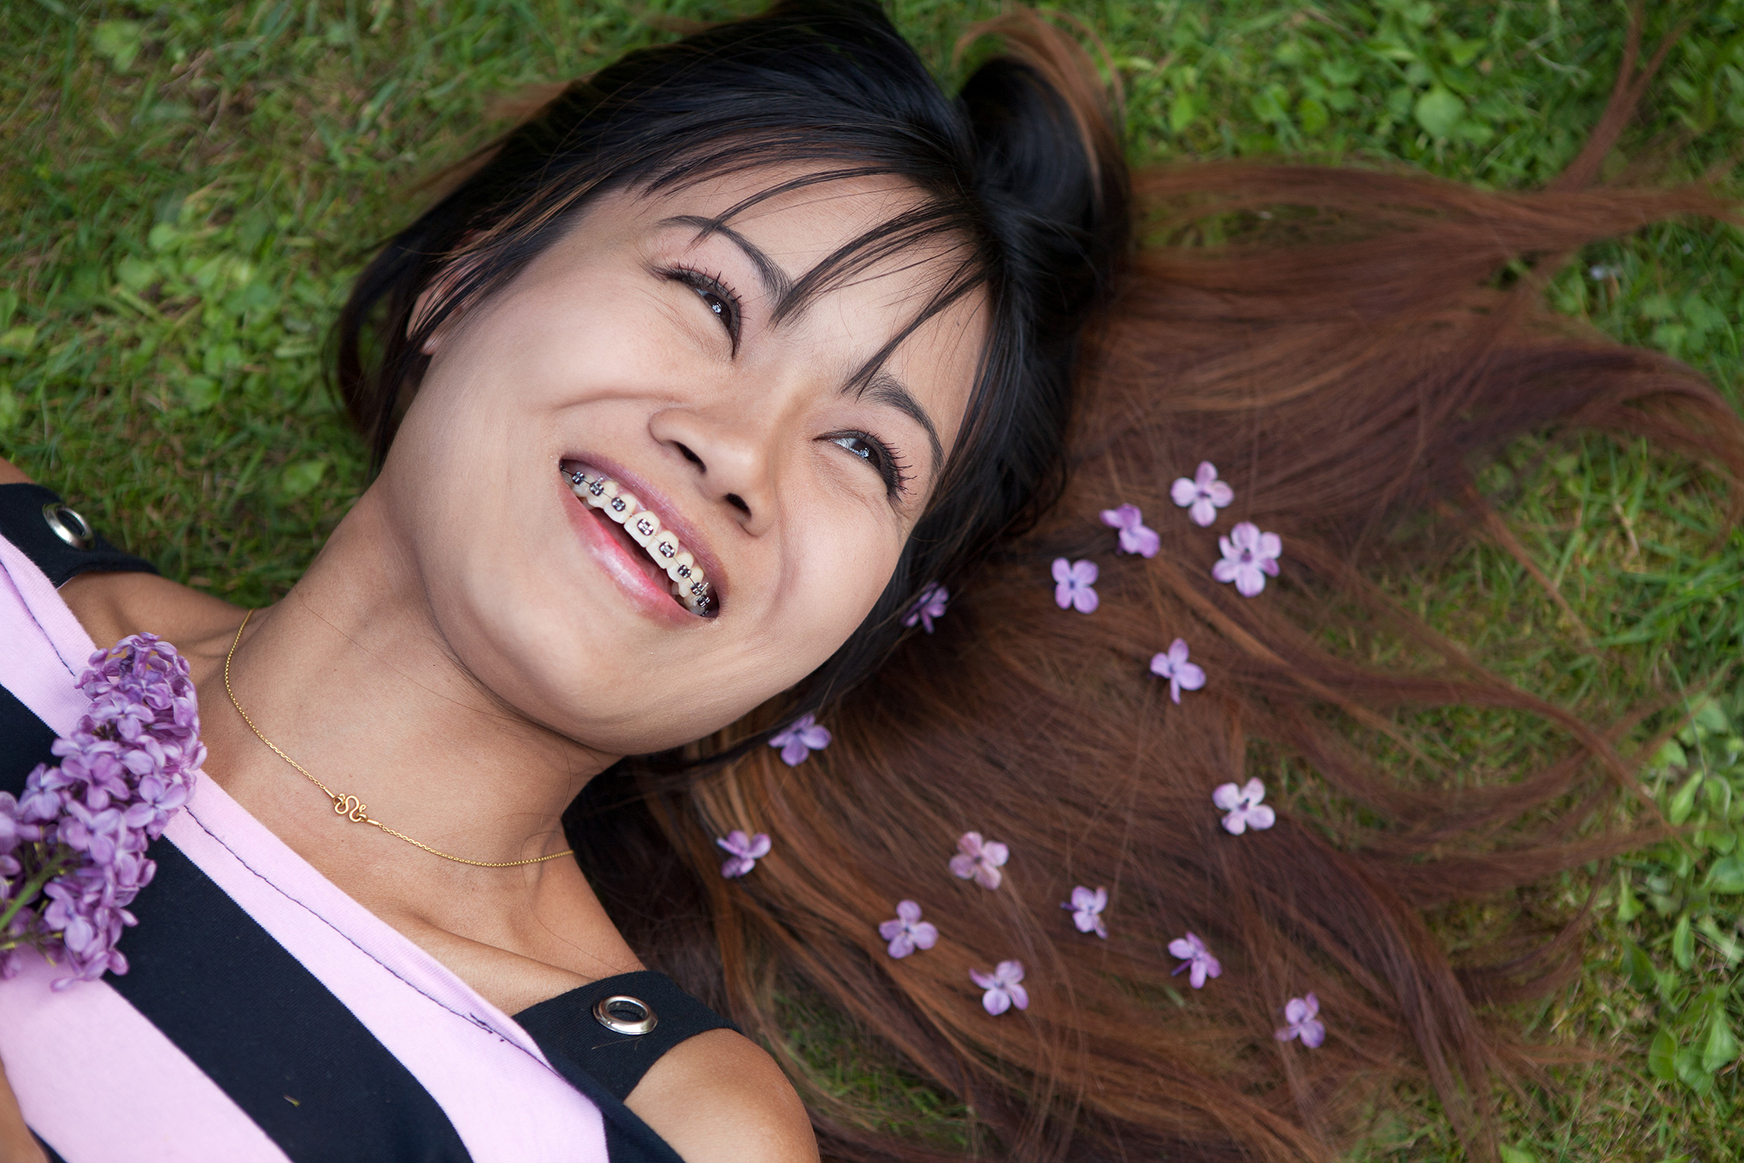 photodune-1613473-thai-womanwith-a-big-smile-laying-on-the-grass-l